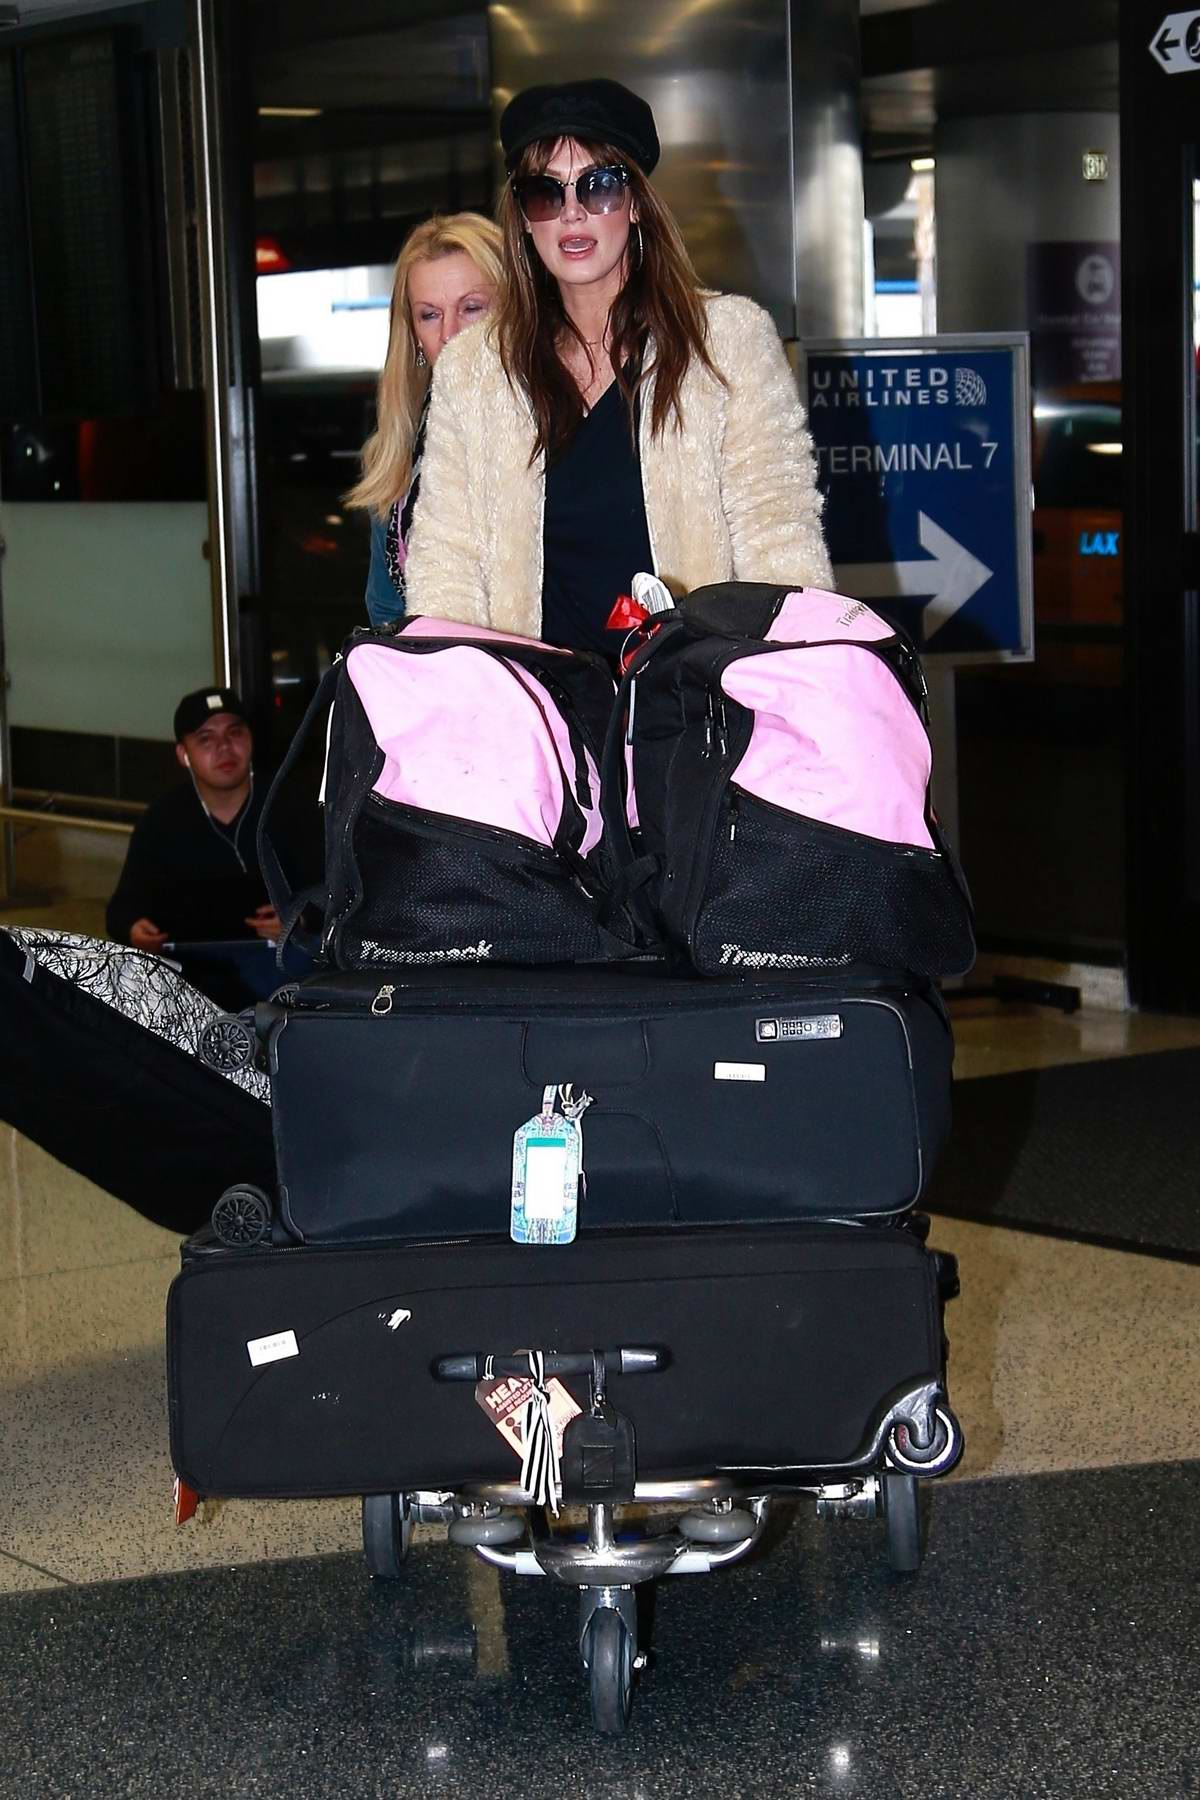 Delta Goodrem carts heavy luggage as she makes her way through LAX airport in Los Angeles